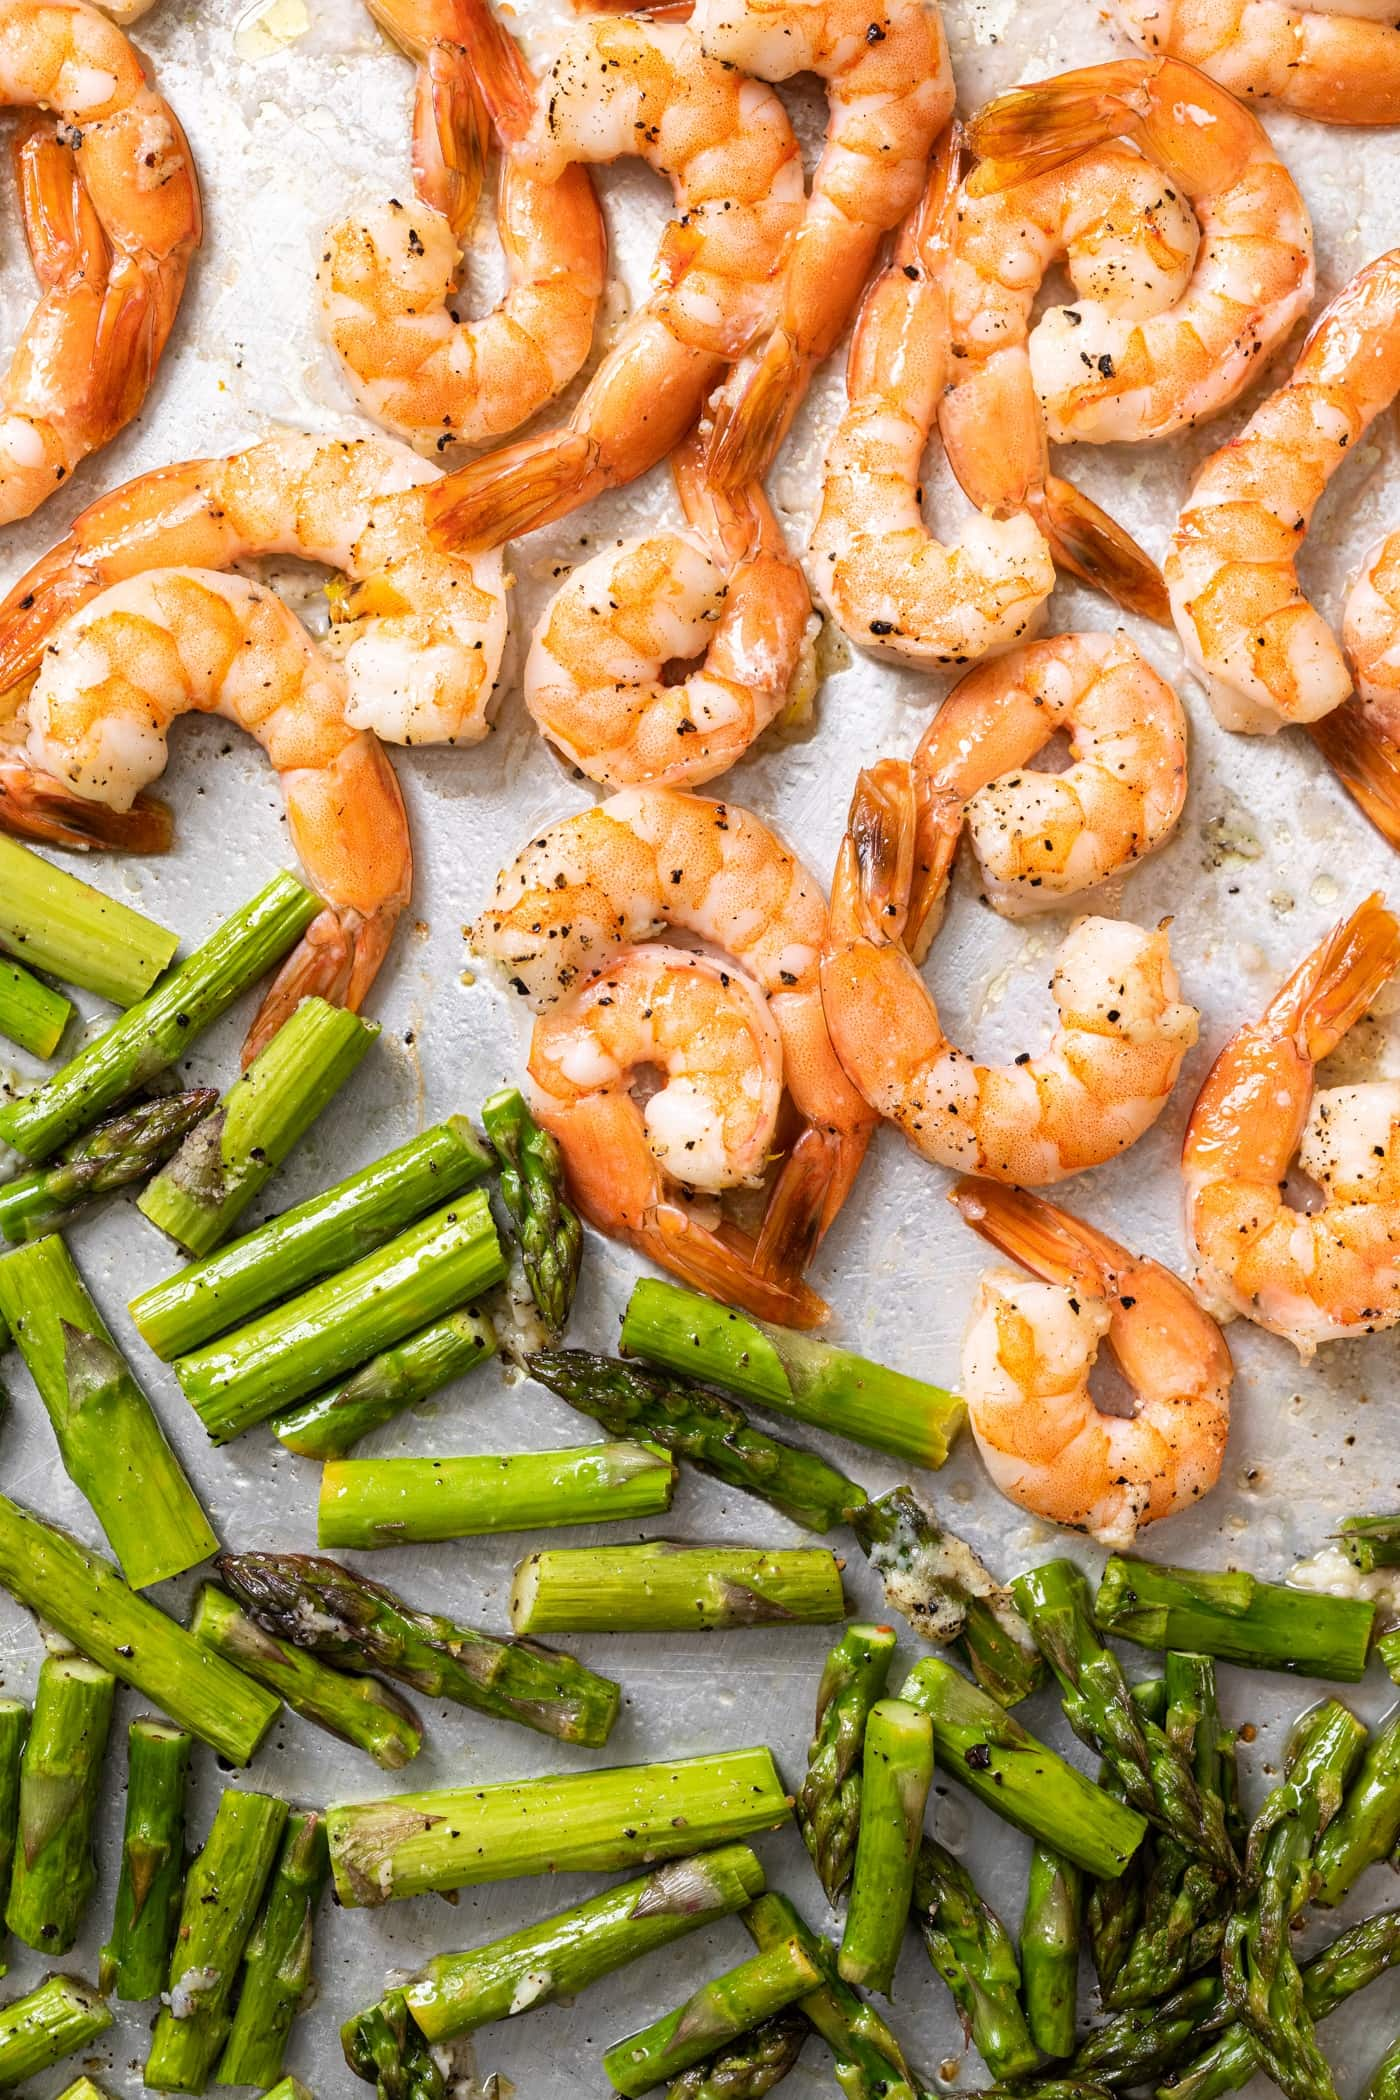 Top down view of sheet pan filled with roasted asparagus and shrimp